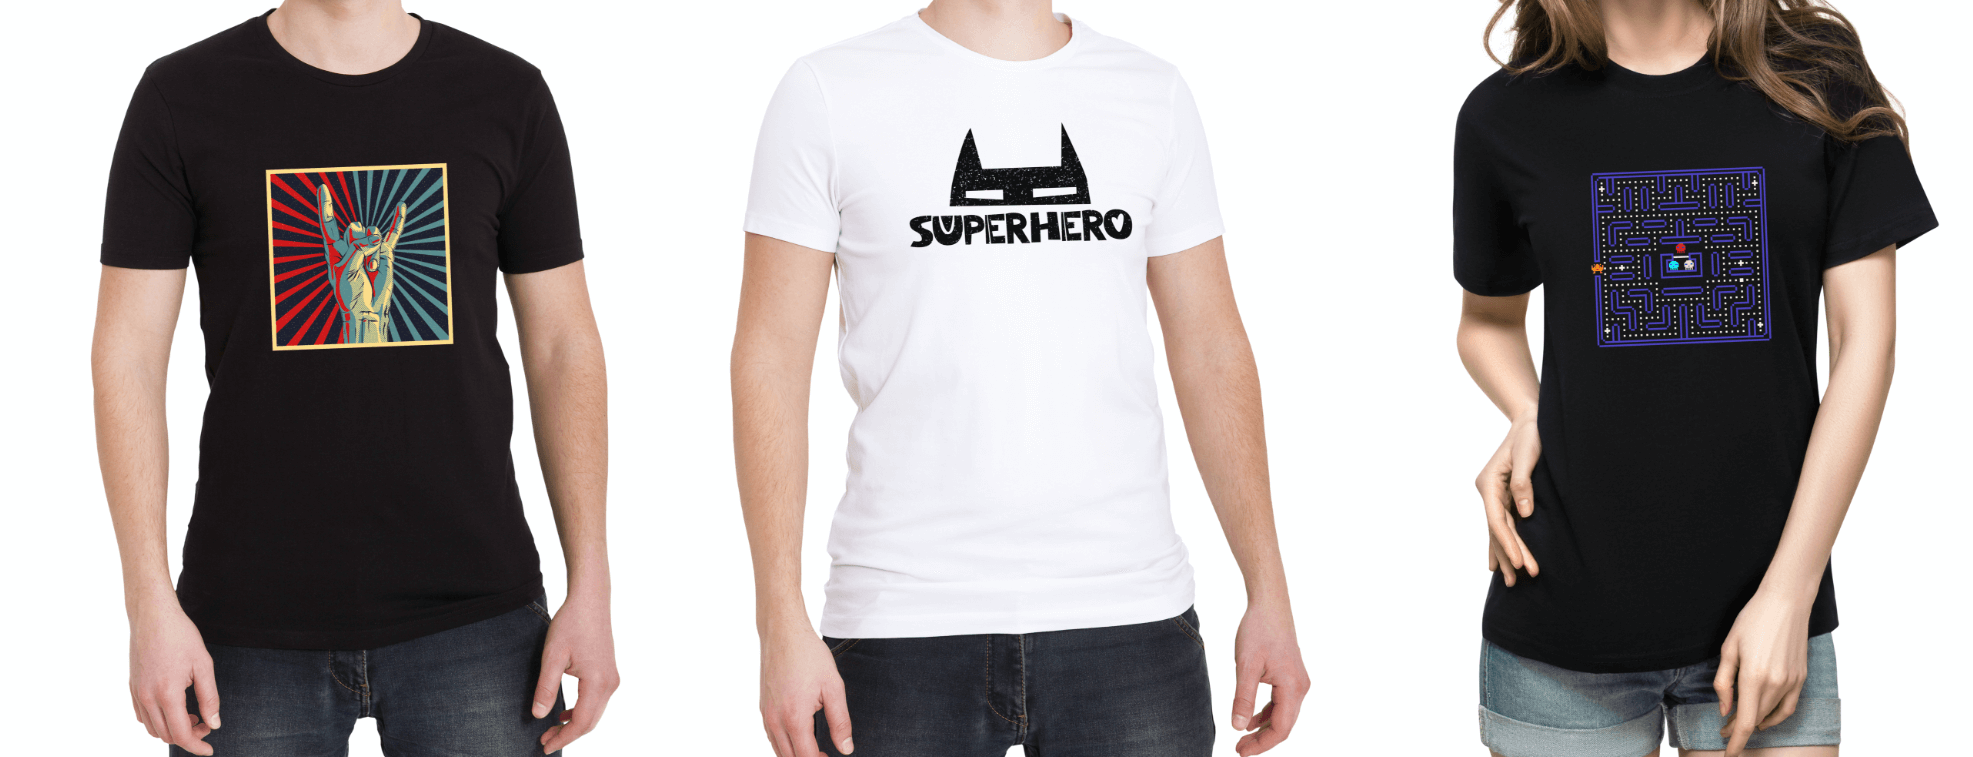 T-shirt design with popular culture references